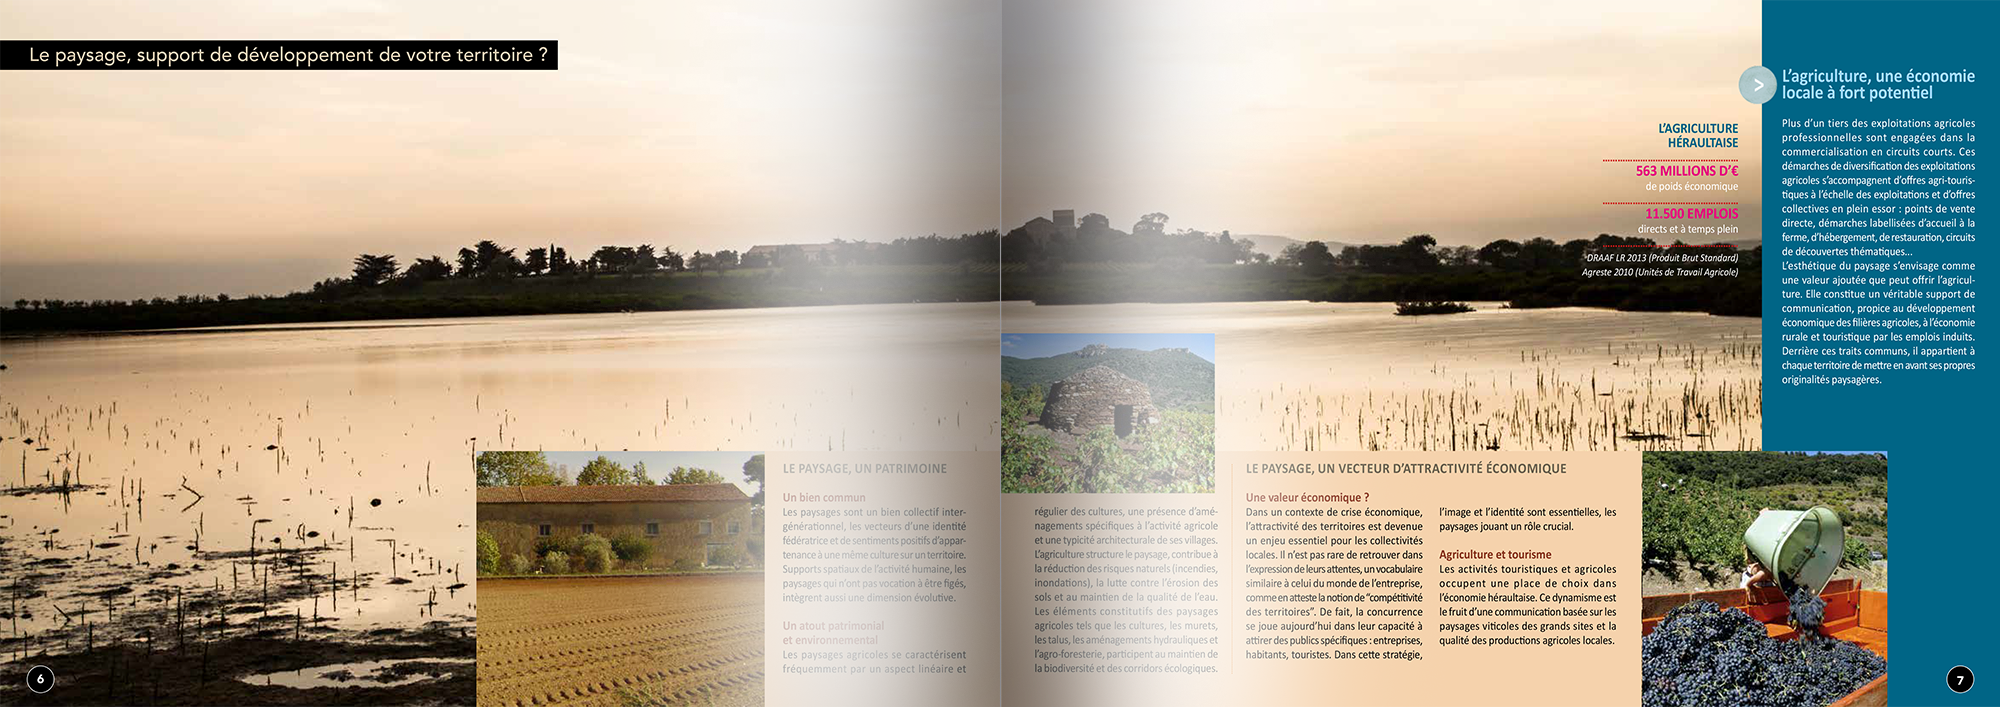 AGRICULTURES & PAYSAGES 1